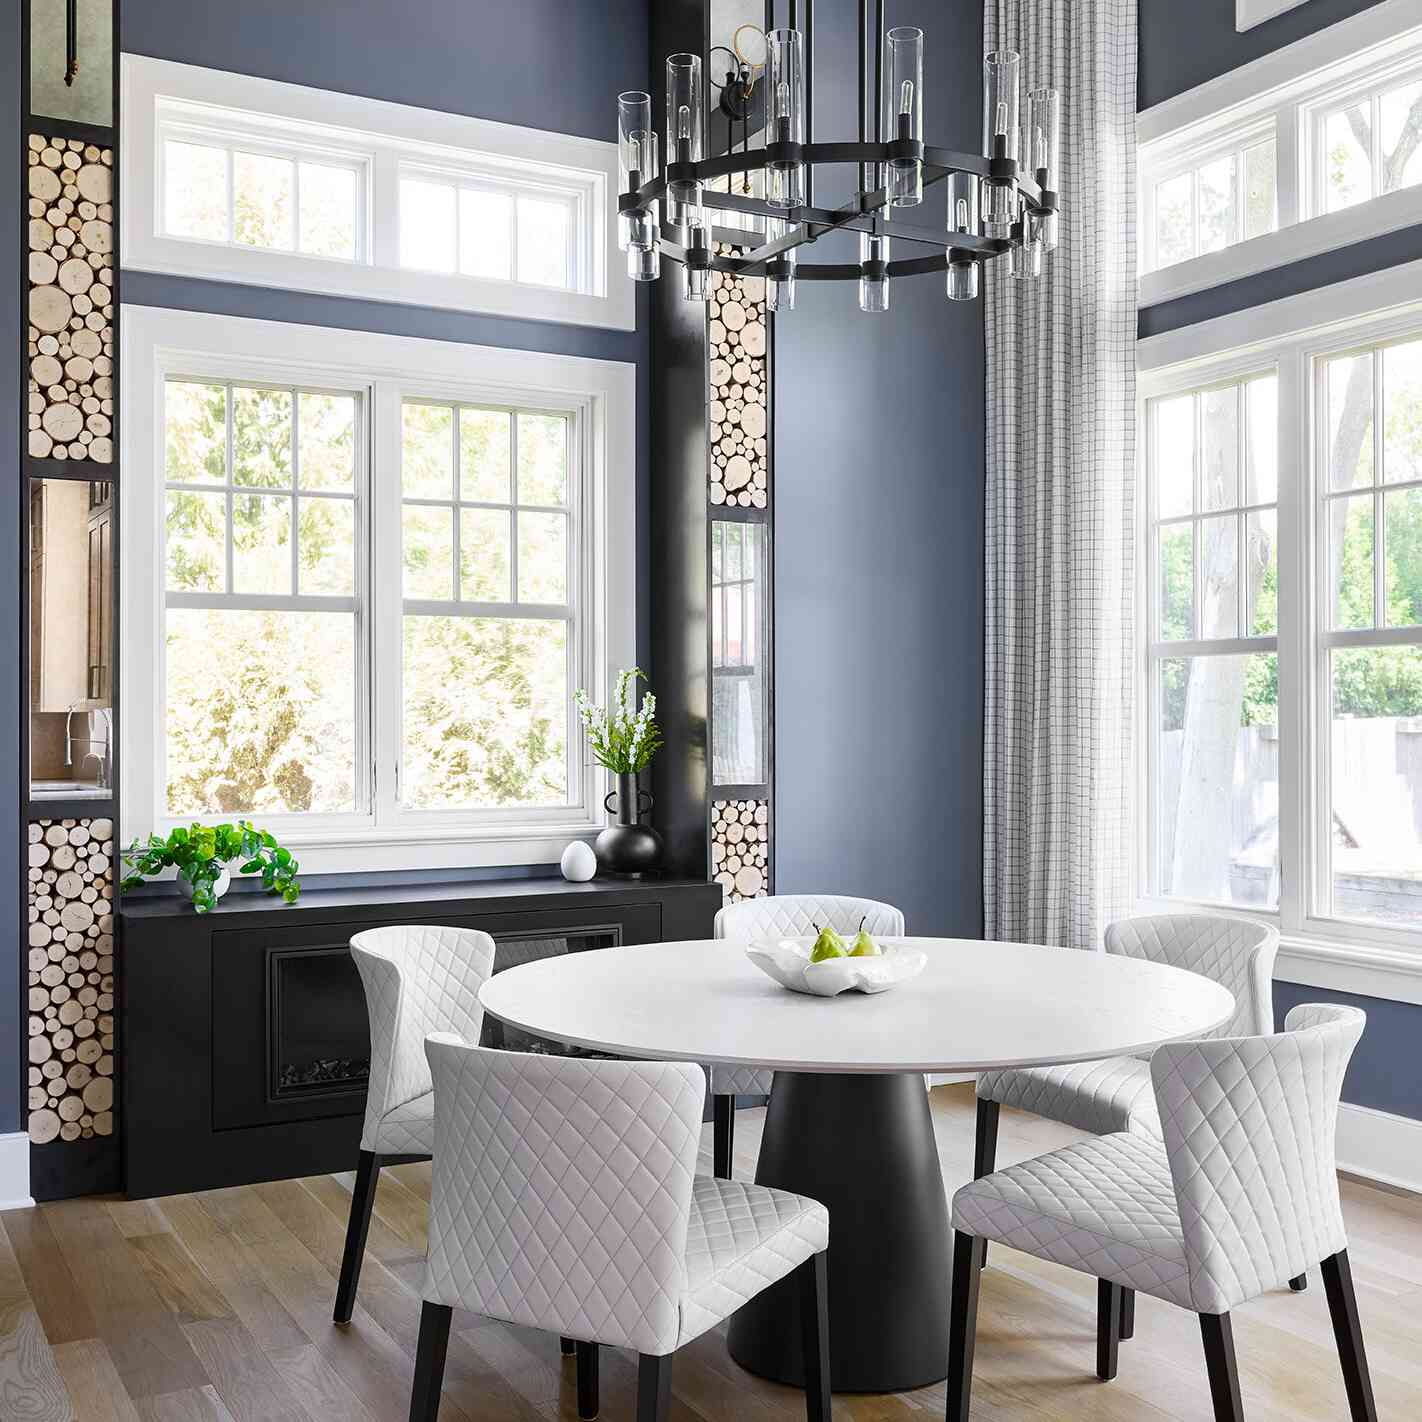 A dining room with blue-gray walls broken up by white trim